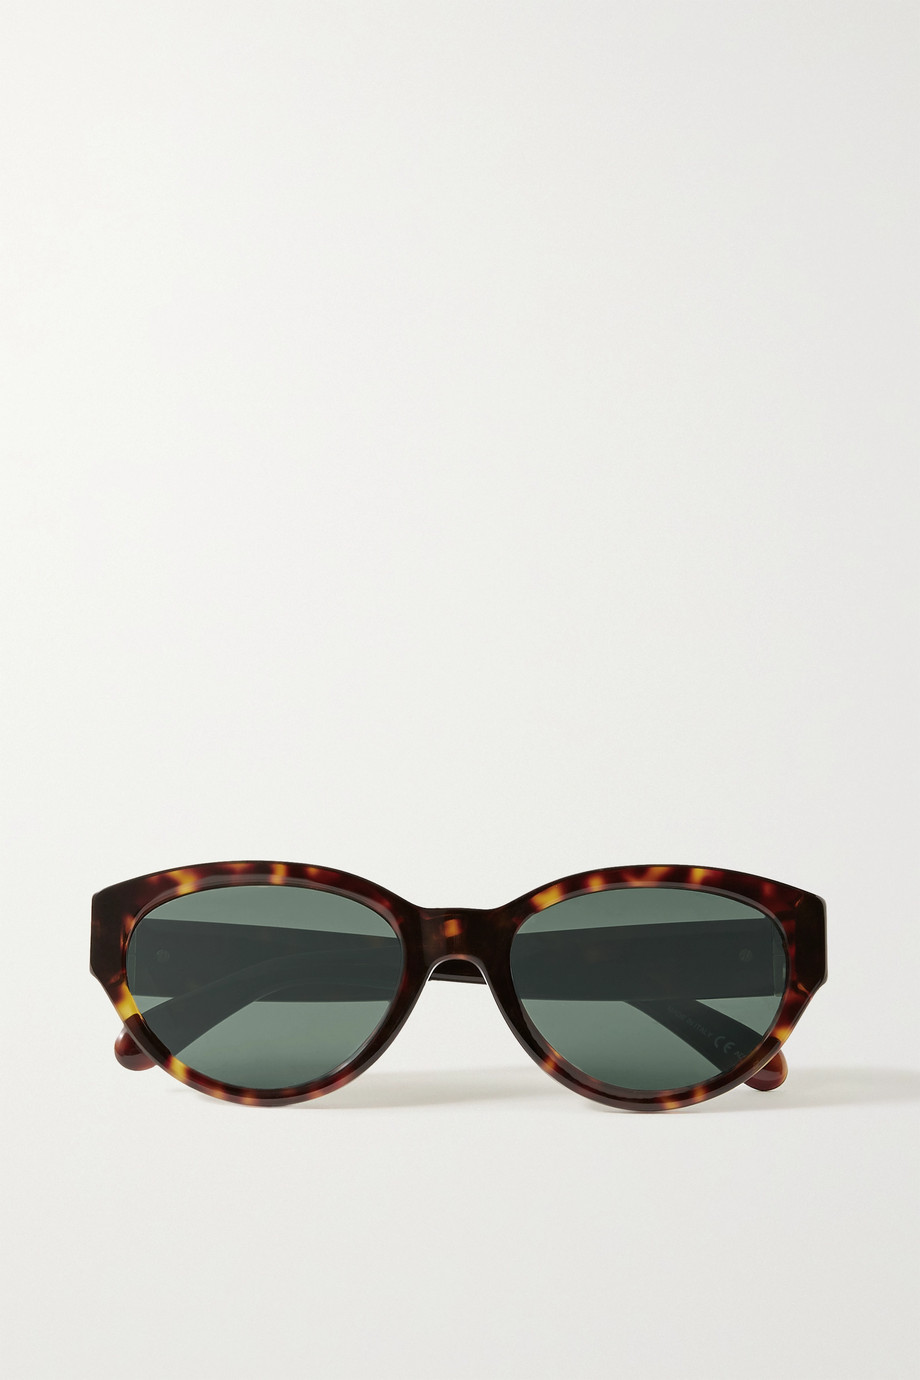 Givenchy Cat-eye tortoiseshell acetate sunglasses